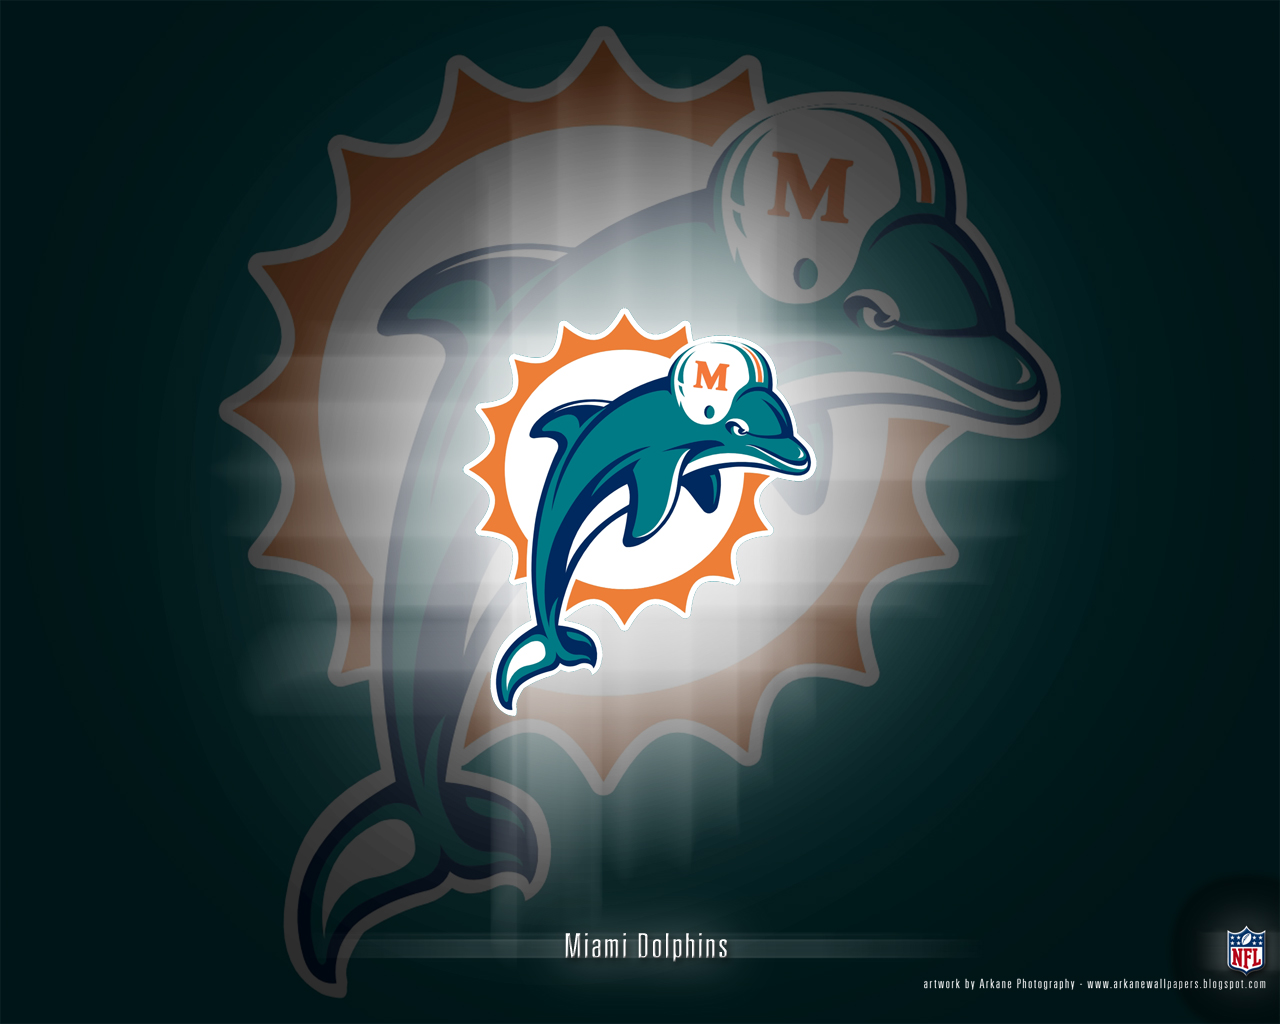 Miami Dolphins HD wallpaper Miami Dolphins wallpapers 1280x1024